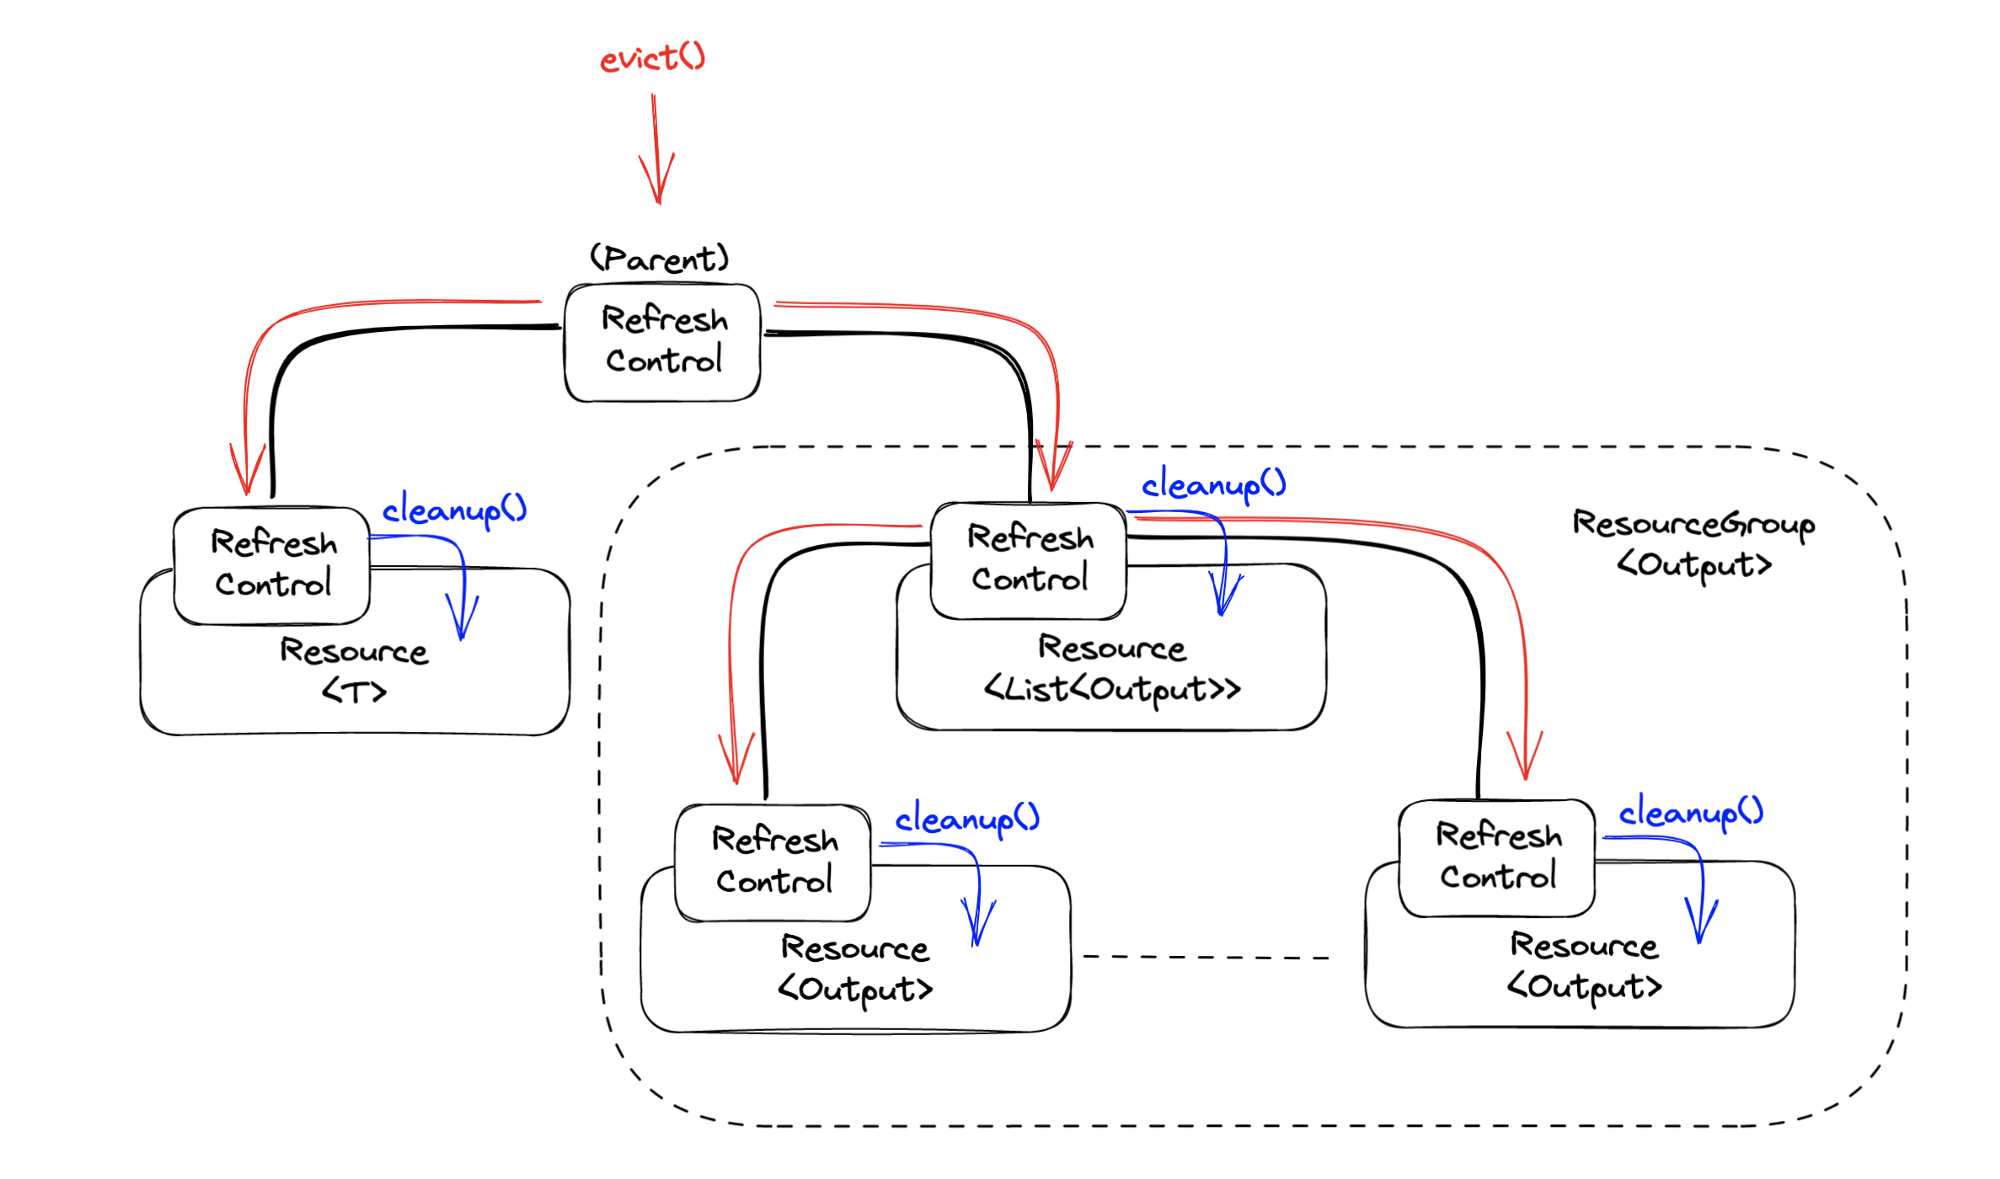 RefreshControl—Evict & cleanup—Component diagram